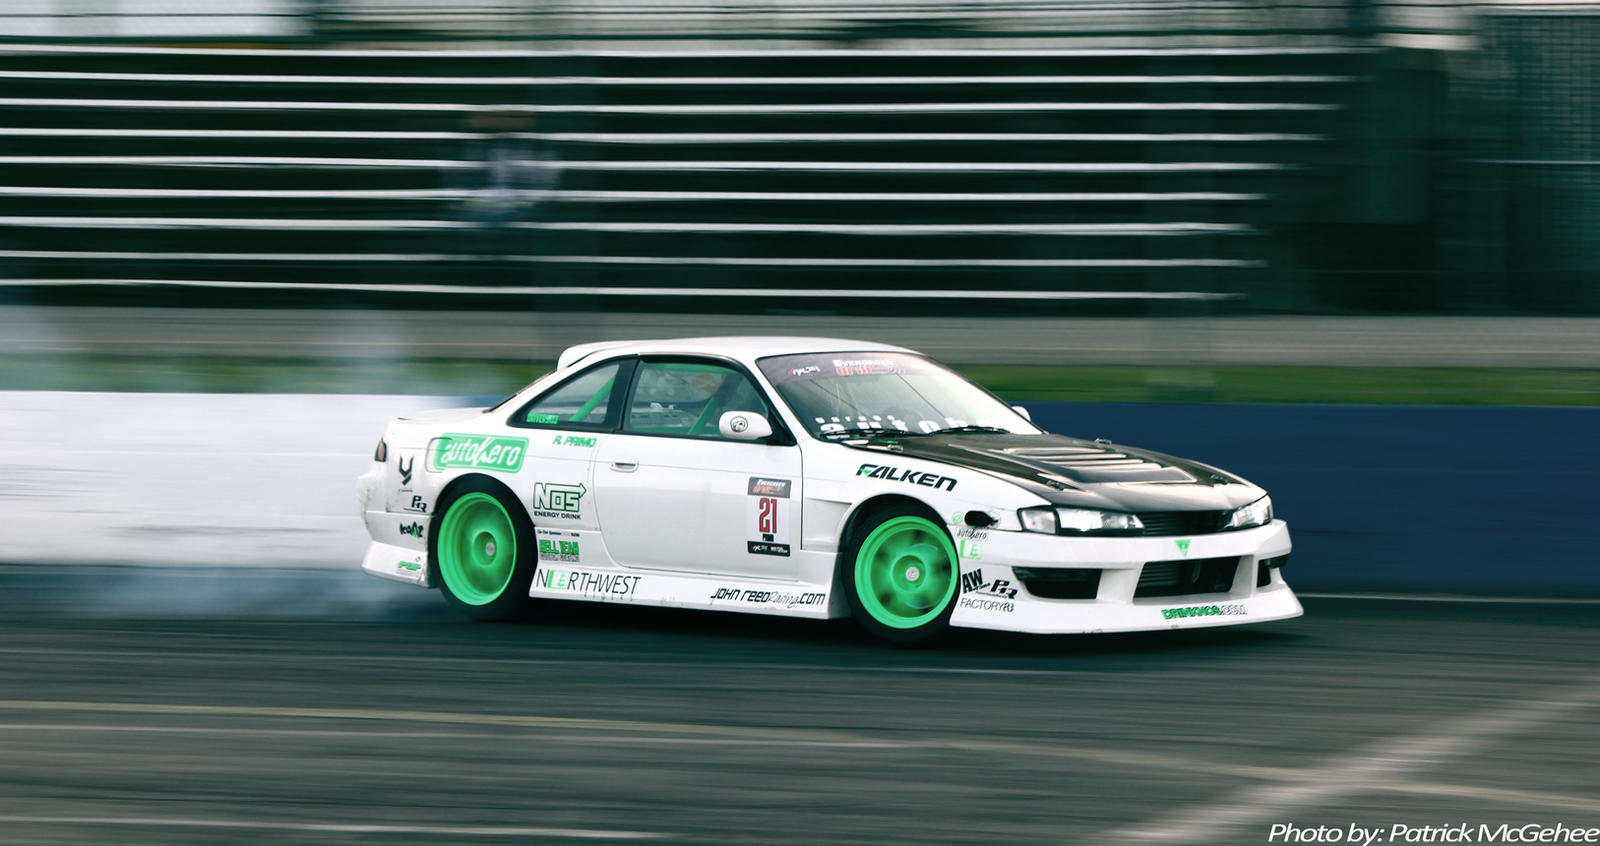 240sx (S14) Drifting by projektPM on DeviantArt